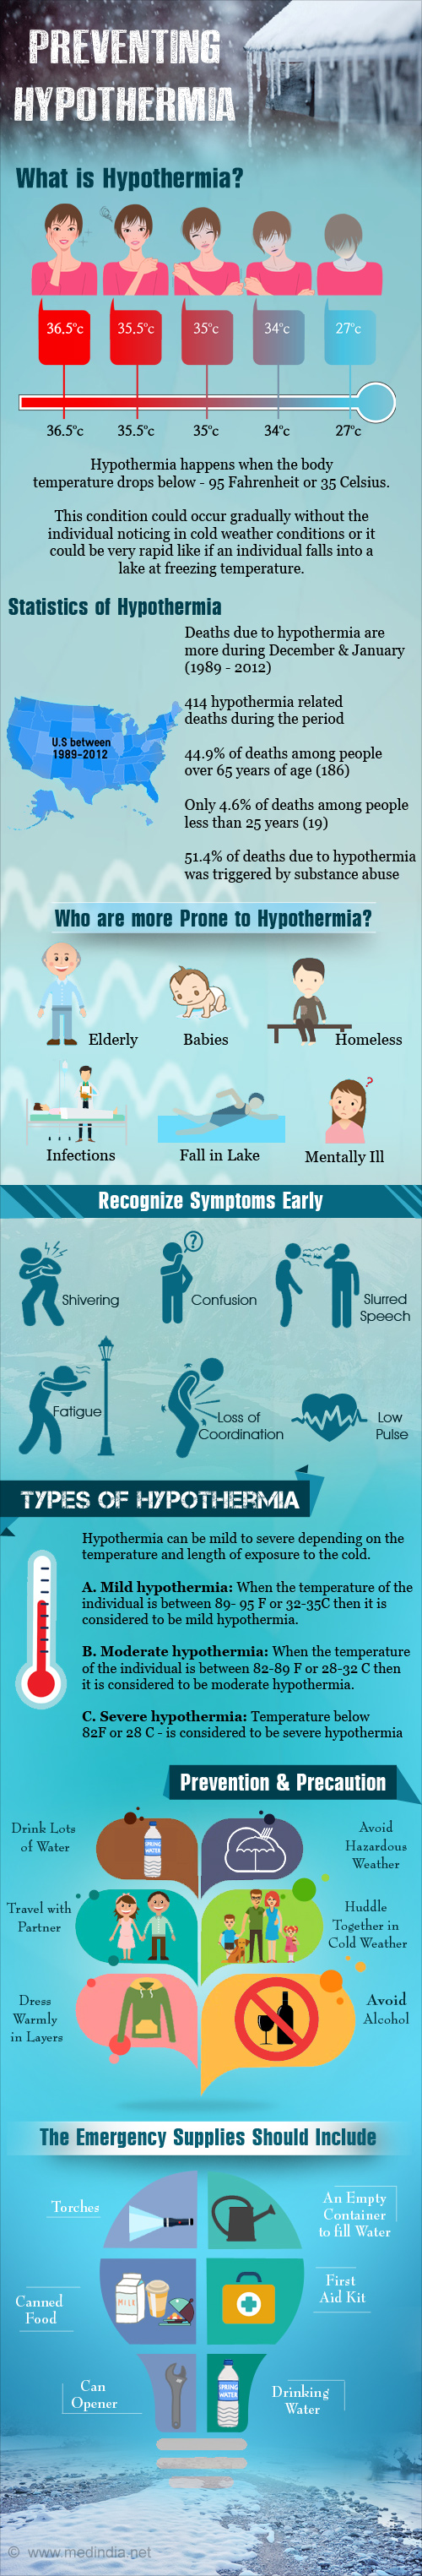 Preventing Hypothermia - Infographic